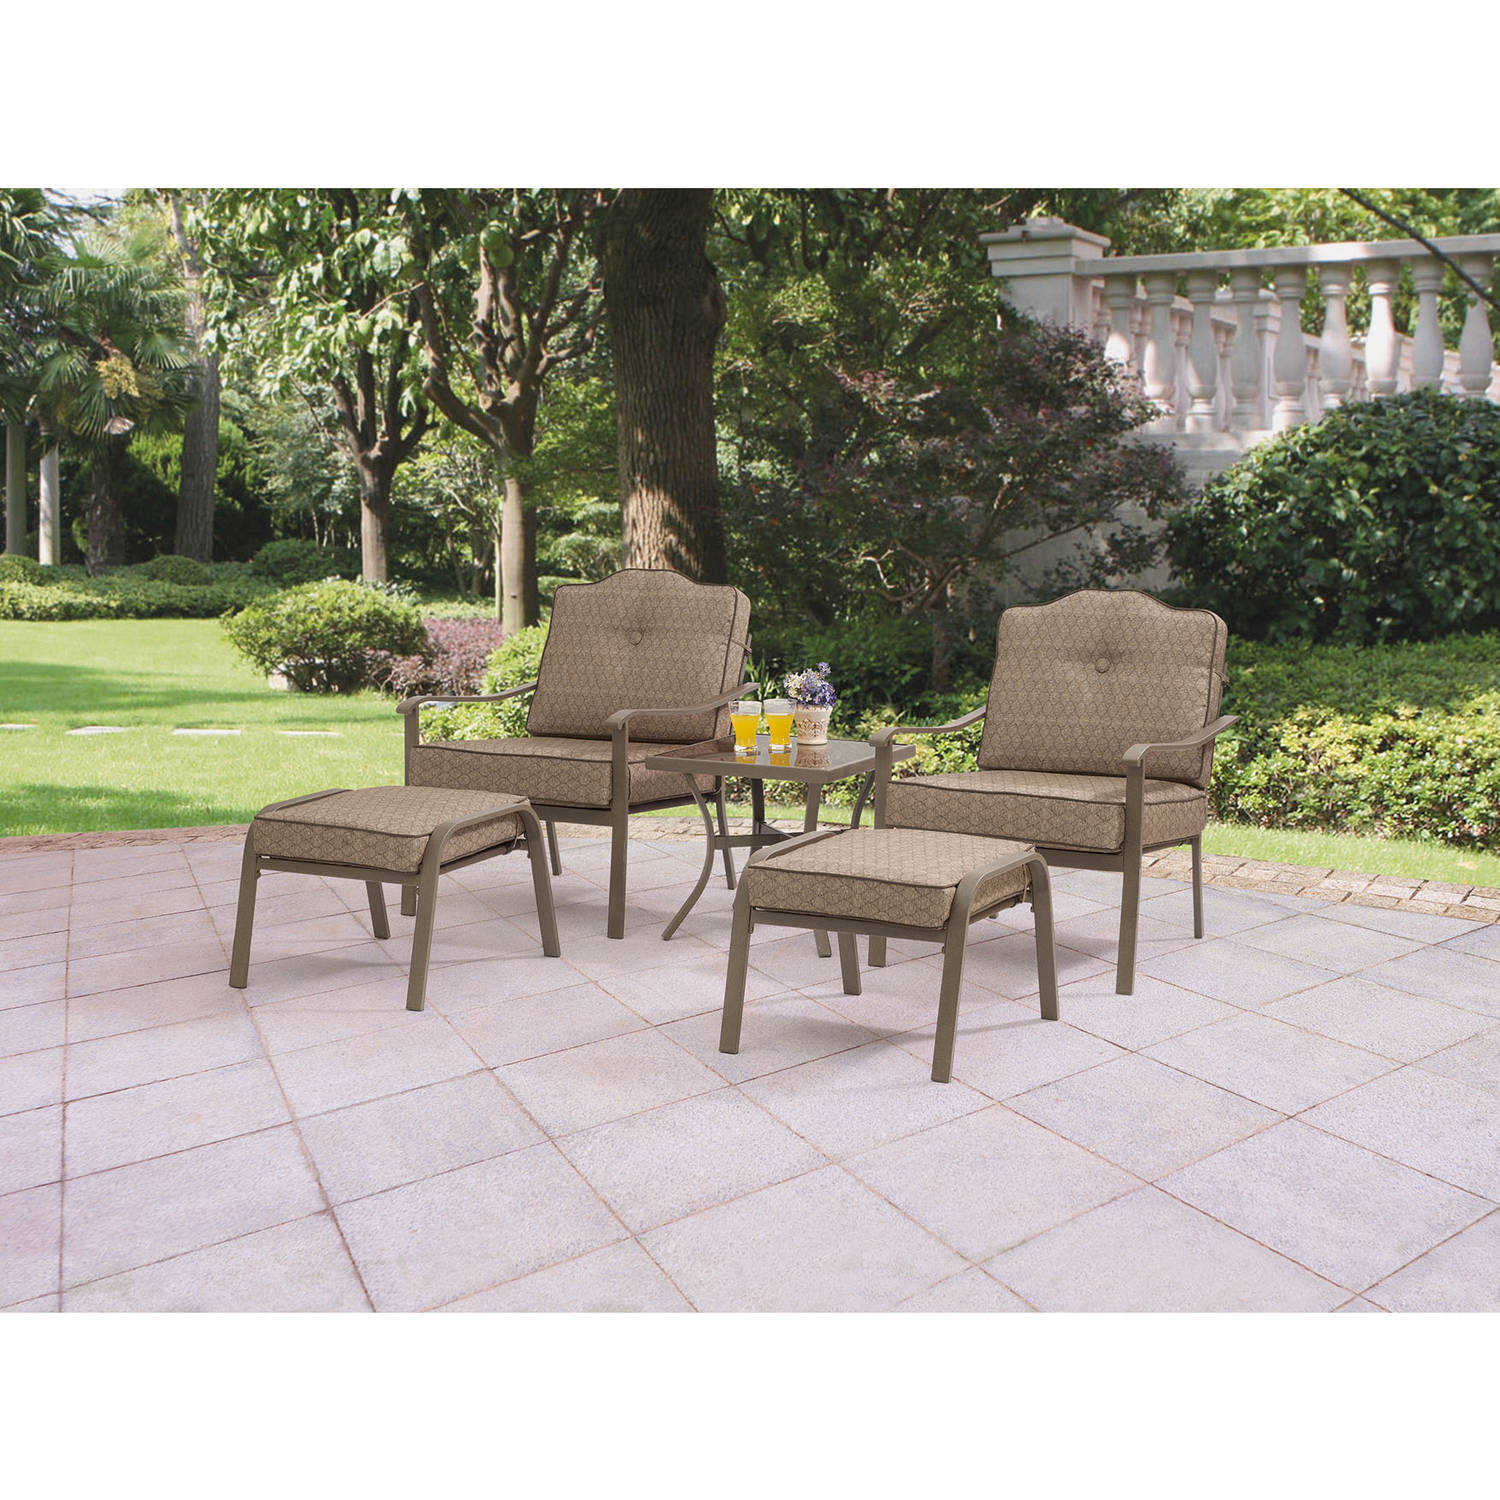 Mainstays Woodland Hills Piece Leisure Set Walmartcom - Woodland patio furniture